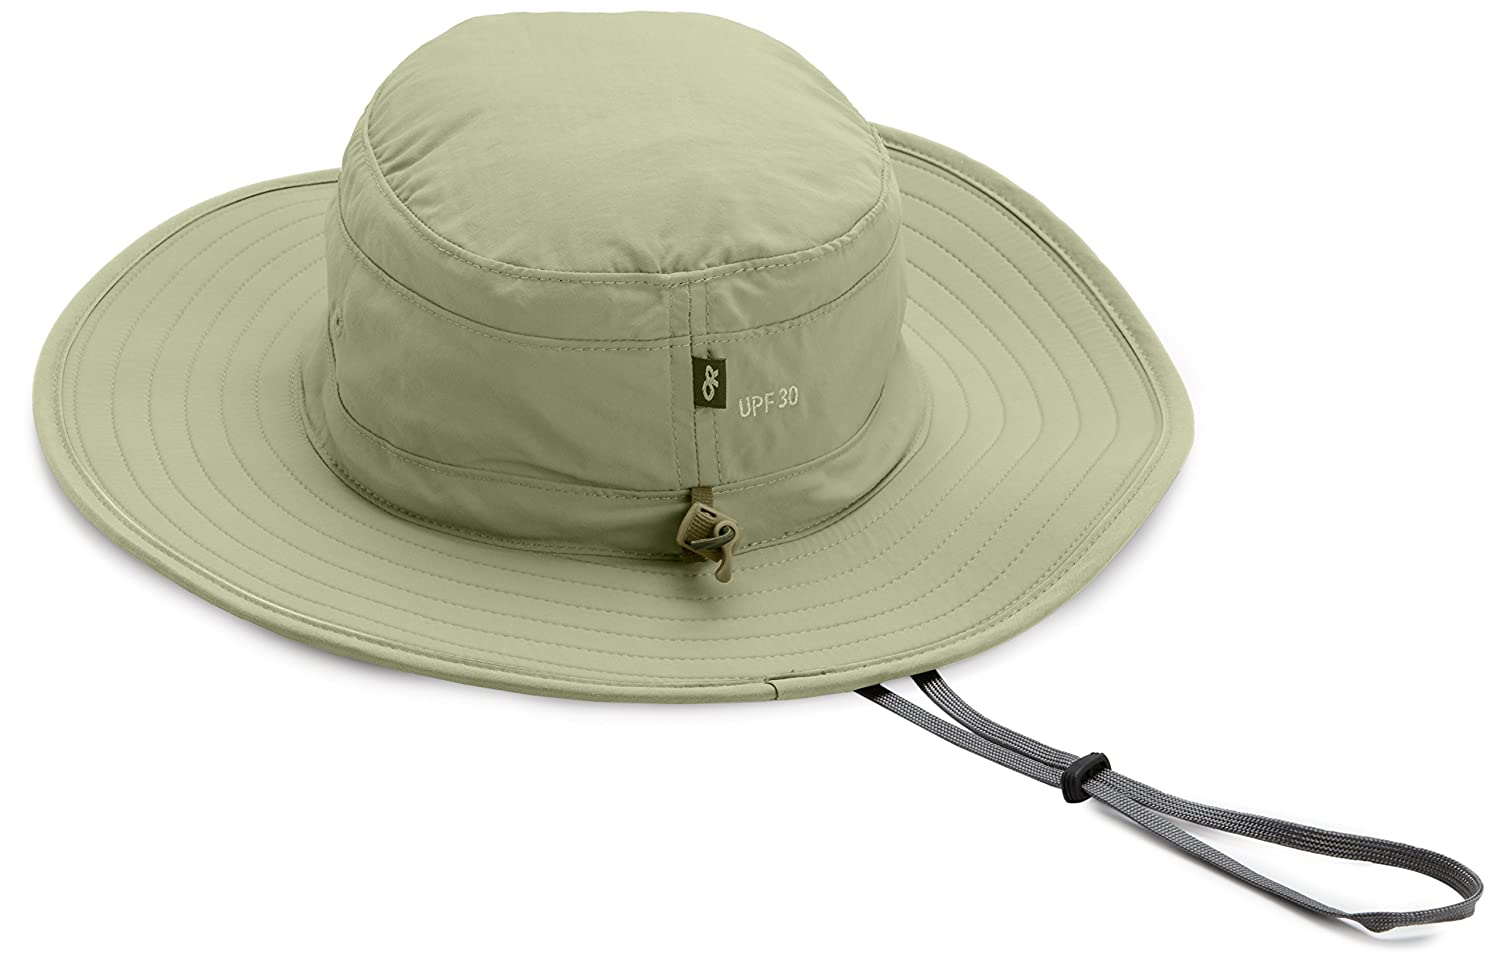 596286720755a0 Outdoor Research Women's Solar Roller Sun Hat: Amazon.ca: Sports & Outdoors